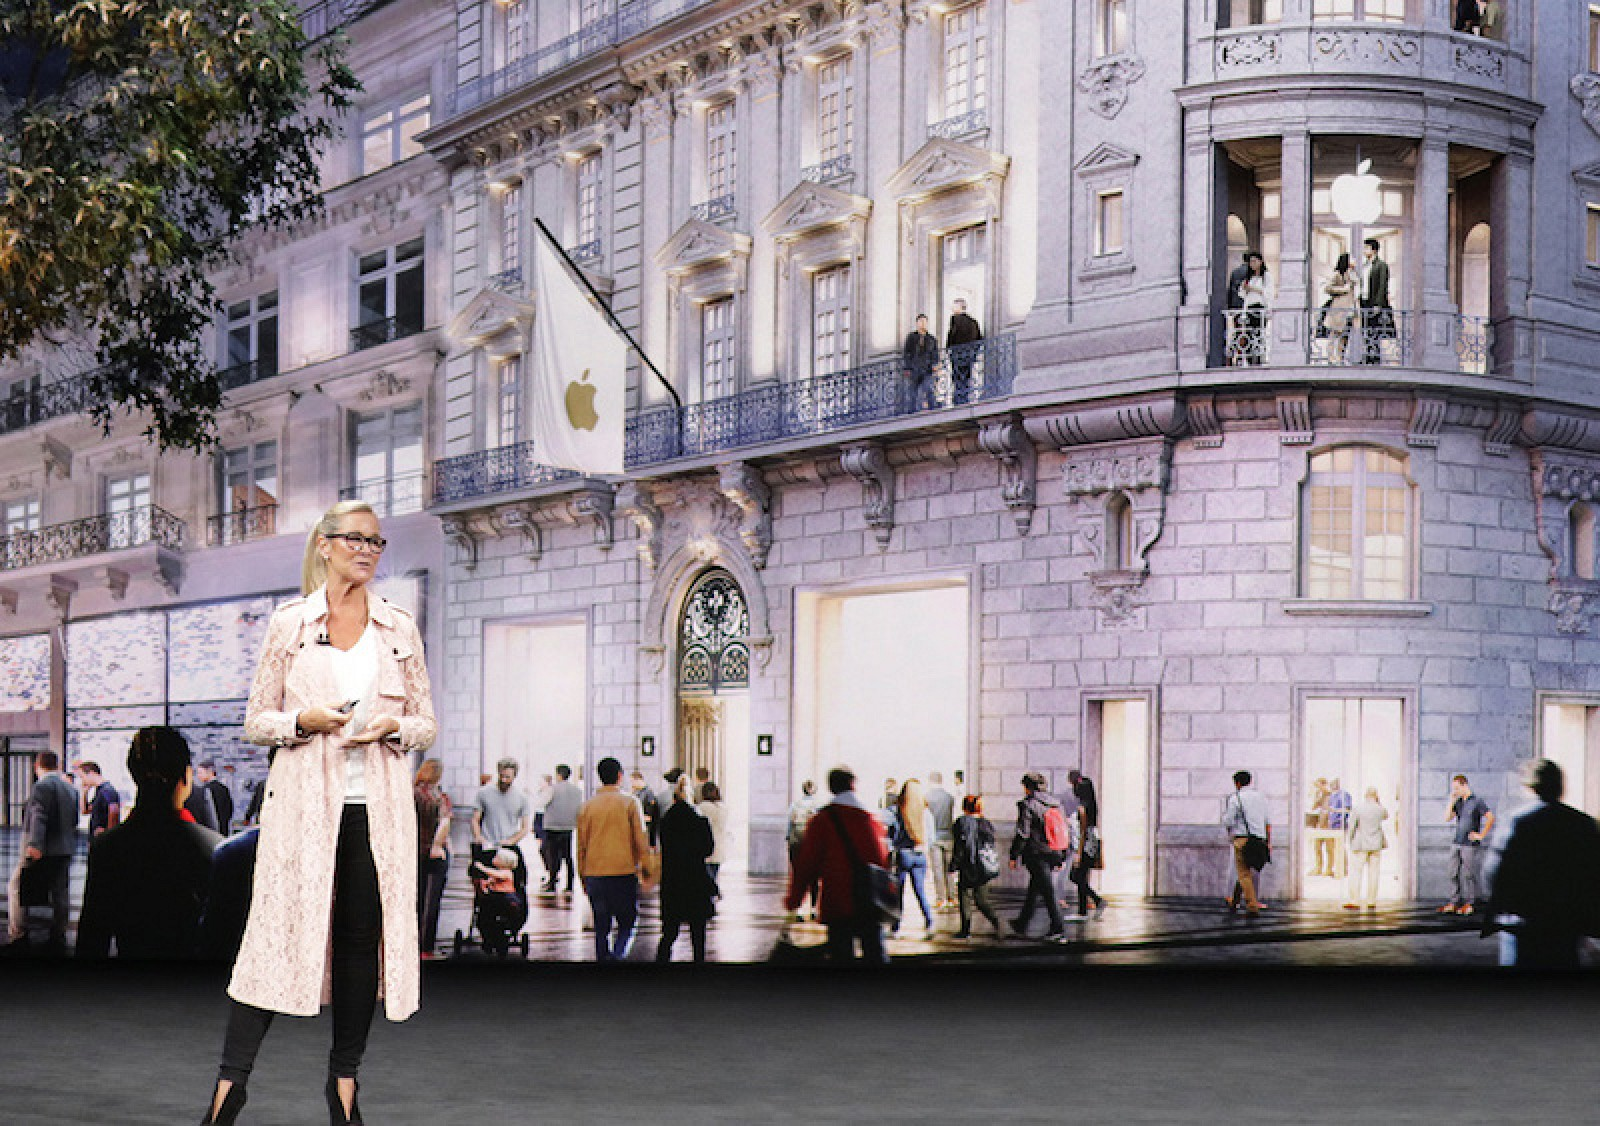 Angela Ahrendts Discusses Apple's Experiential Retail Strategy in New Interview